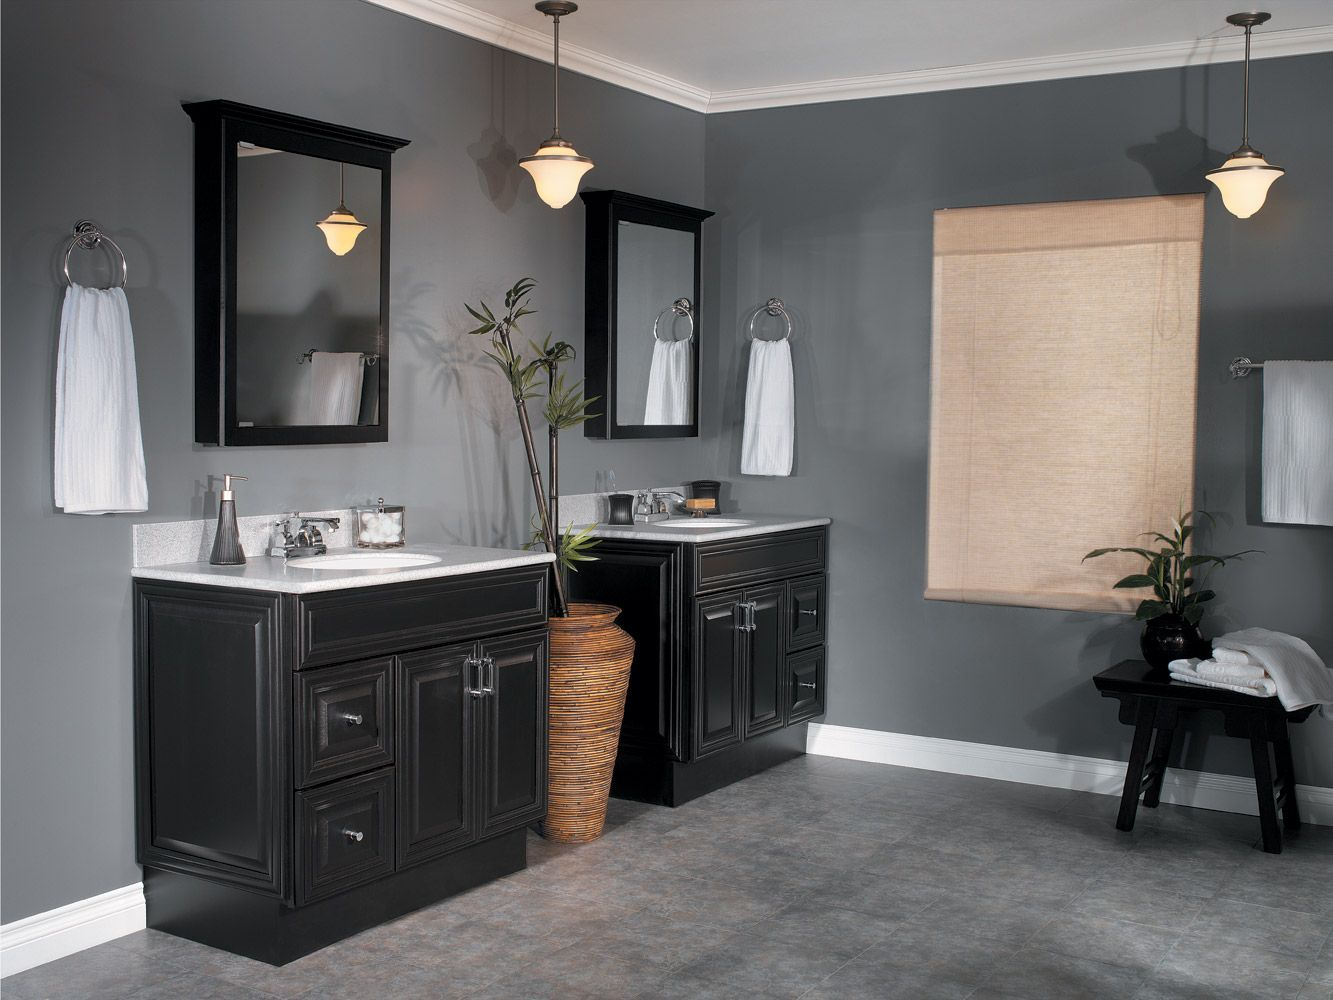 Images bathroom dark wood vanity tile bathroom wall along with black master bath cabinet - Master bath vanity design ideas ...